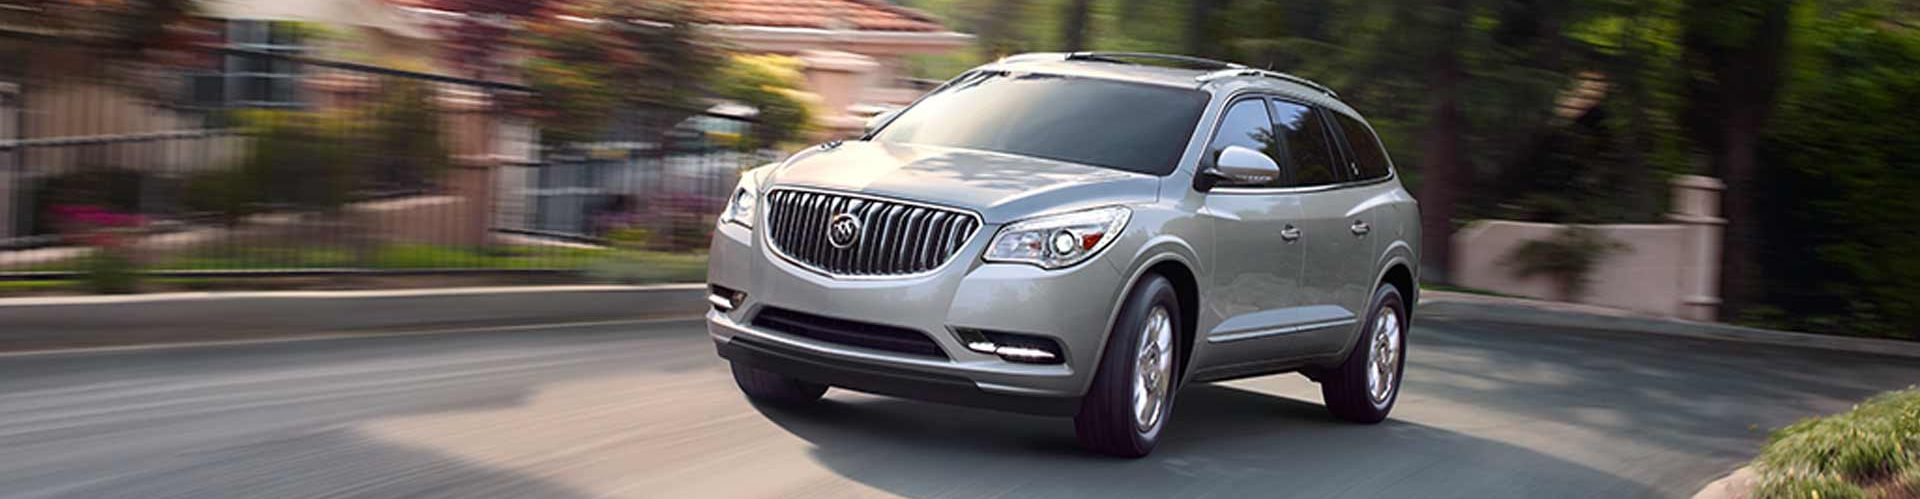 select and lease suv envision vehicles deals jim buick gmc causley on new specials